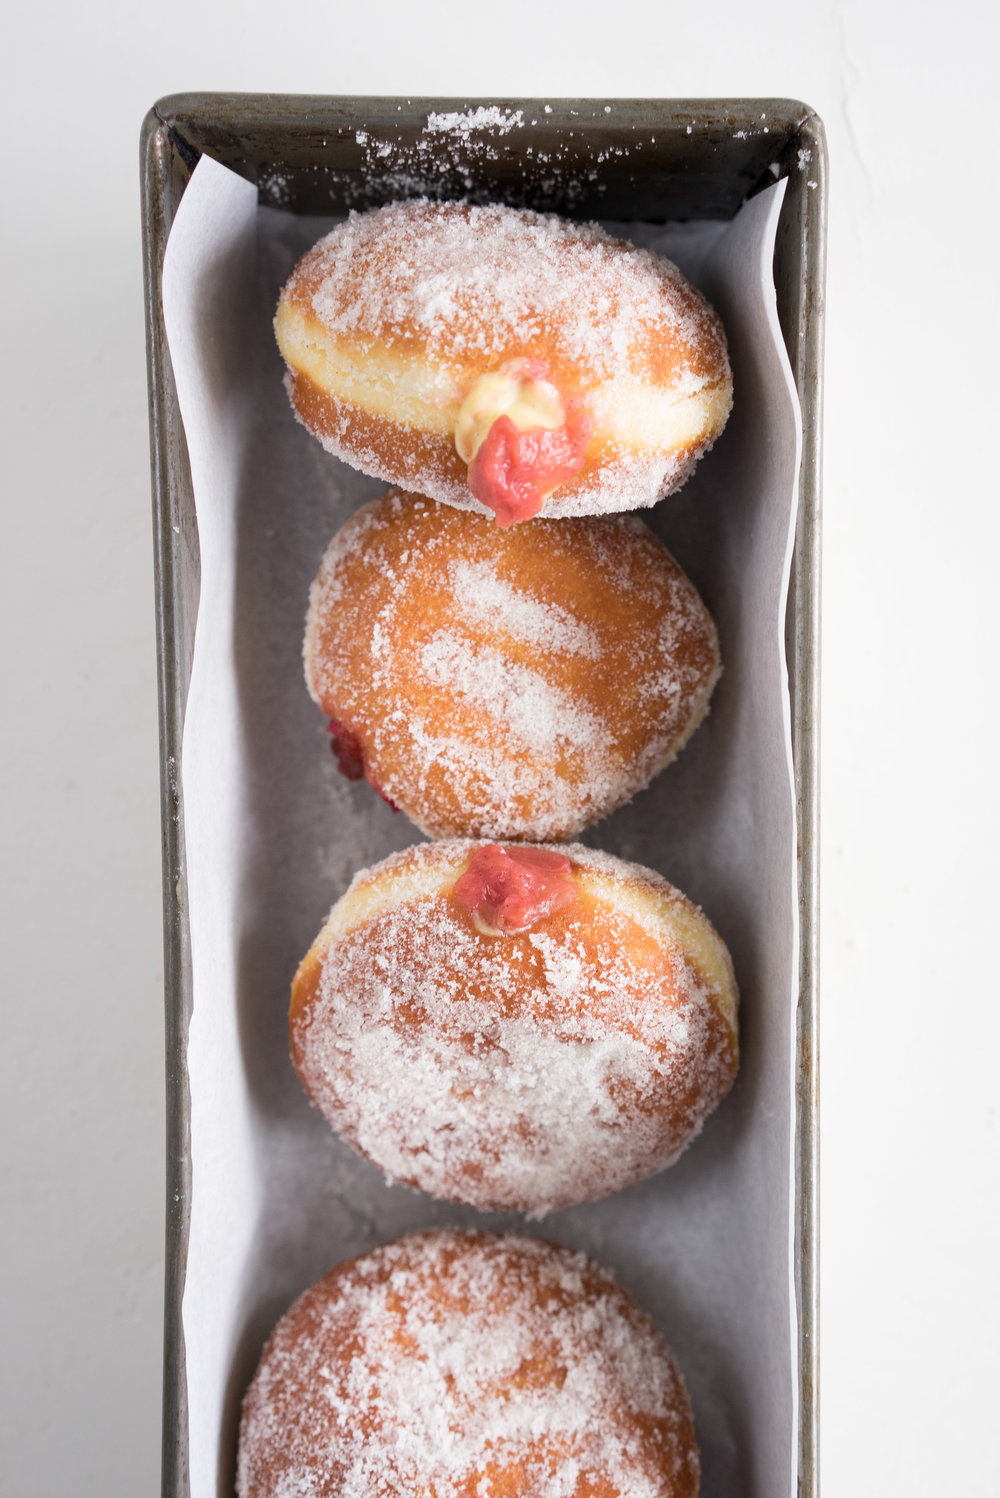 Brioche doughnuts, roasted rhubarb, vanilla bean pastry cream, and vanilla sugar